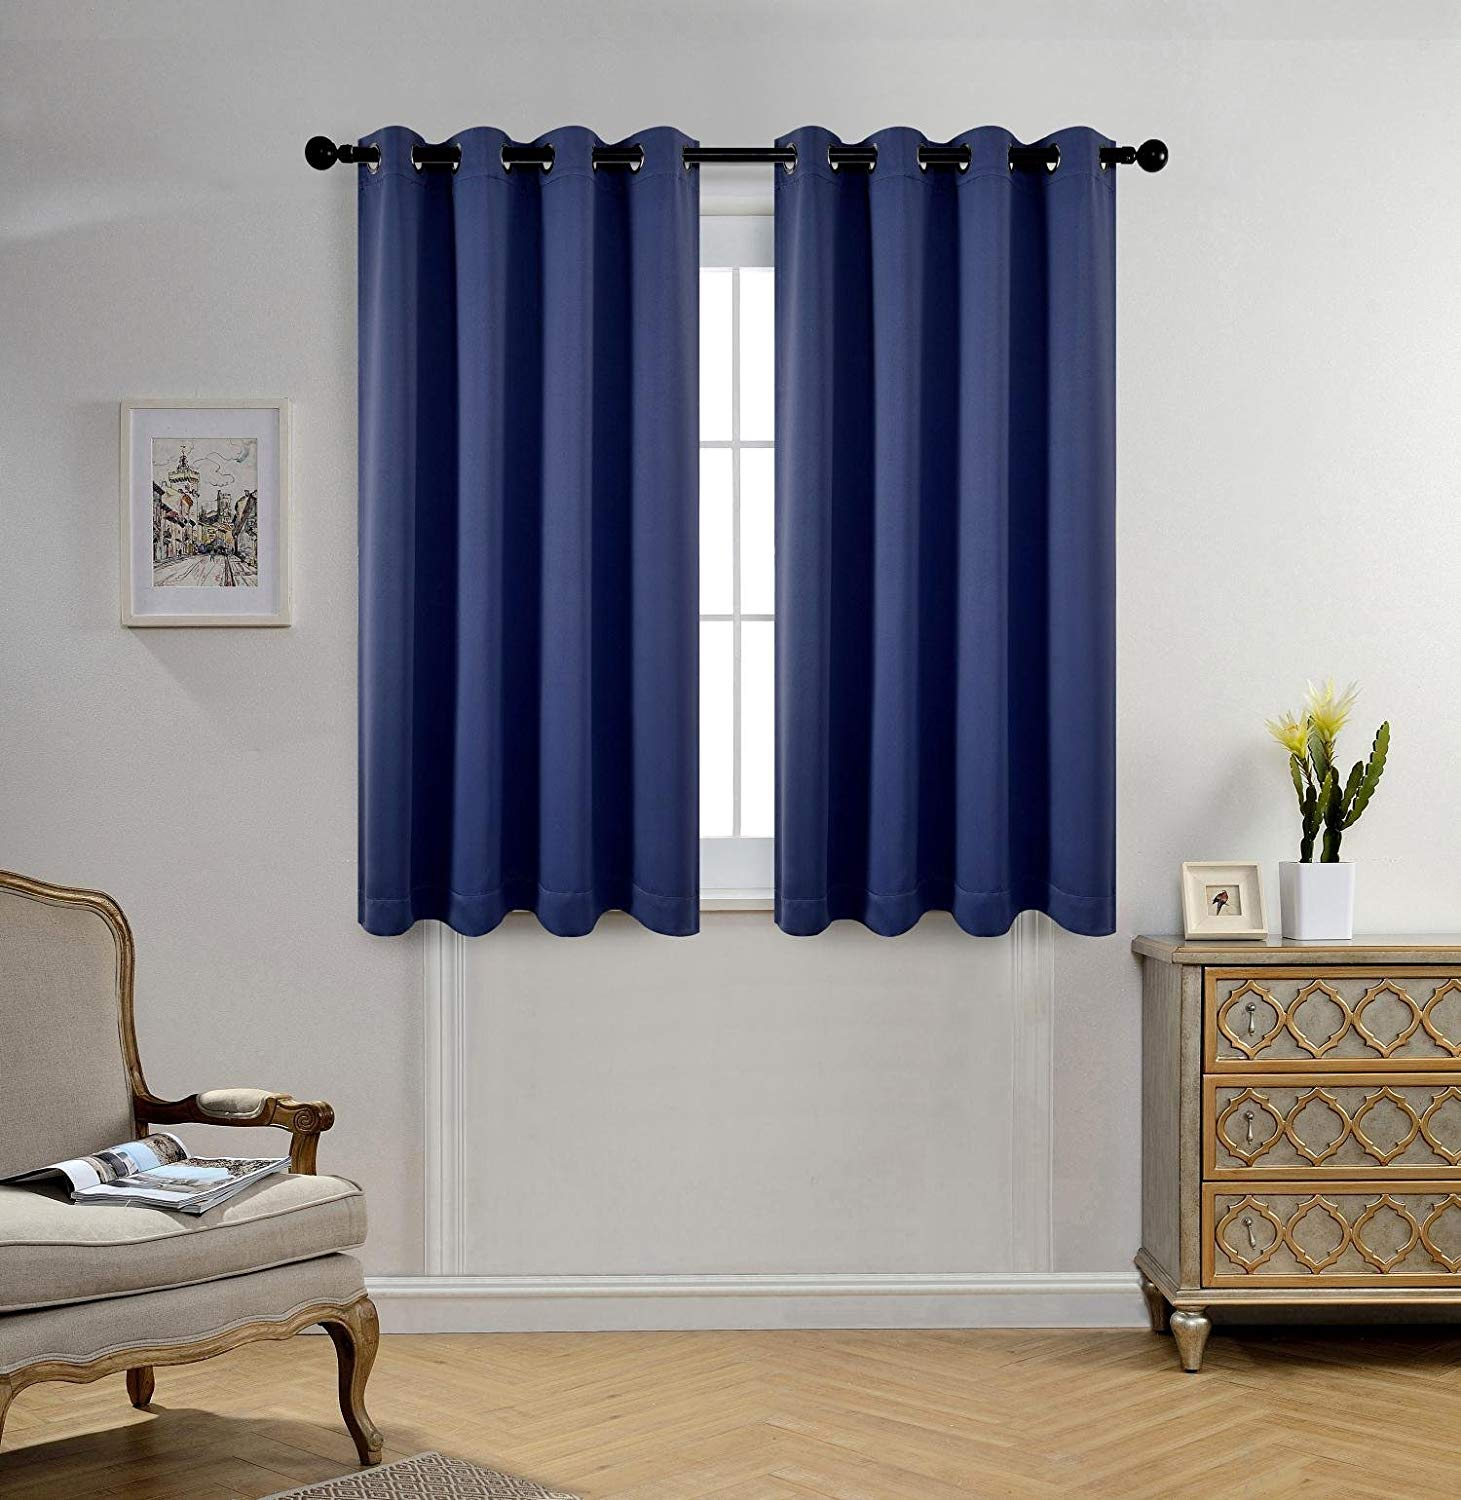 Miuco Best Blackout Curtains Review by www.snoremagazine.com